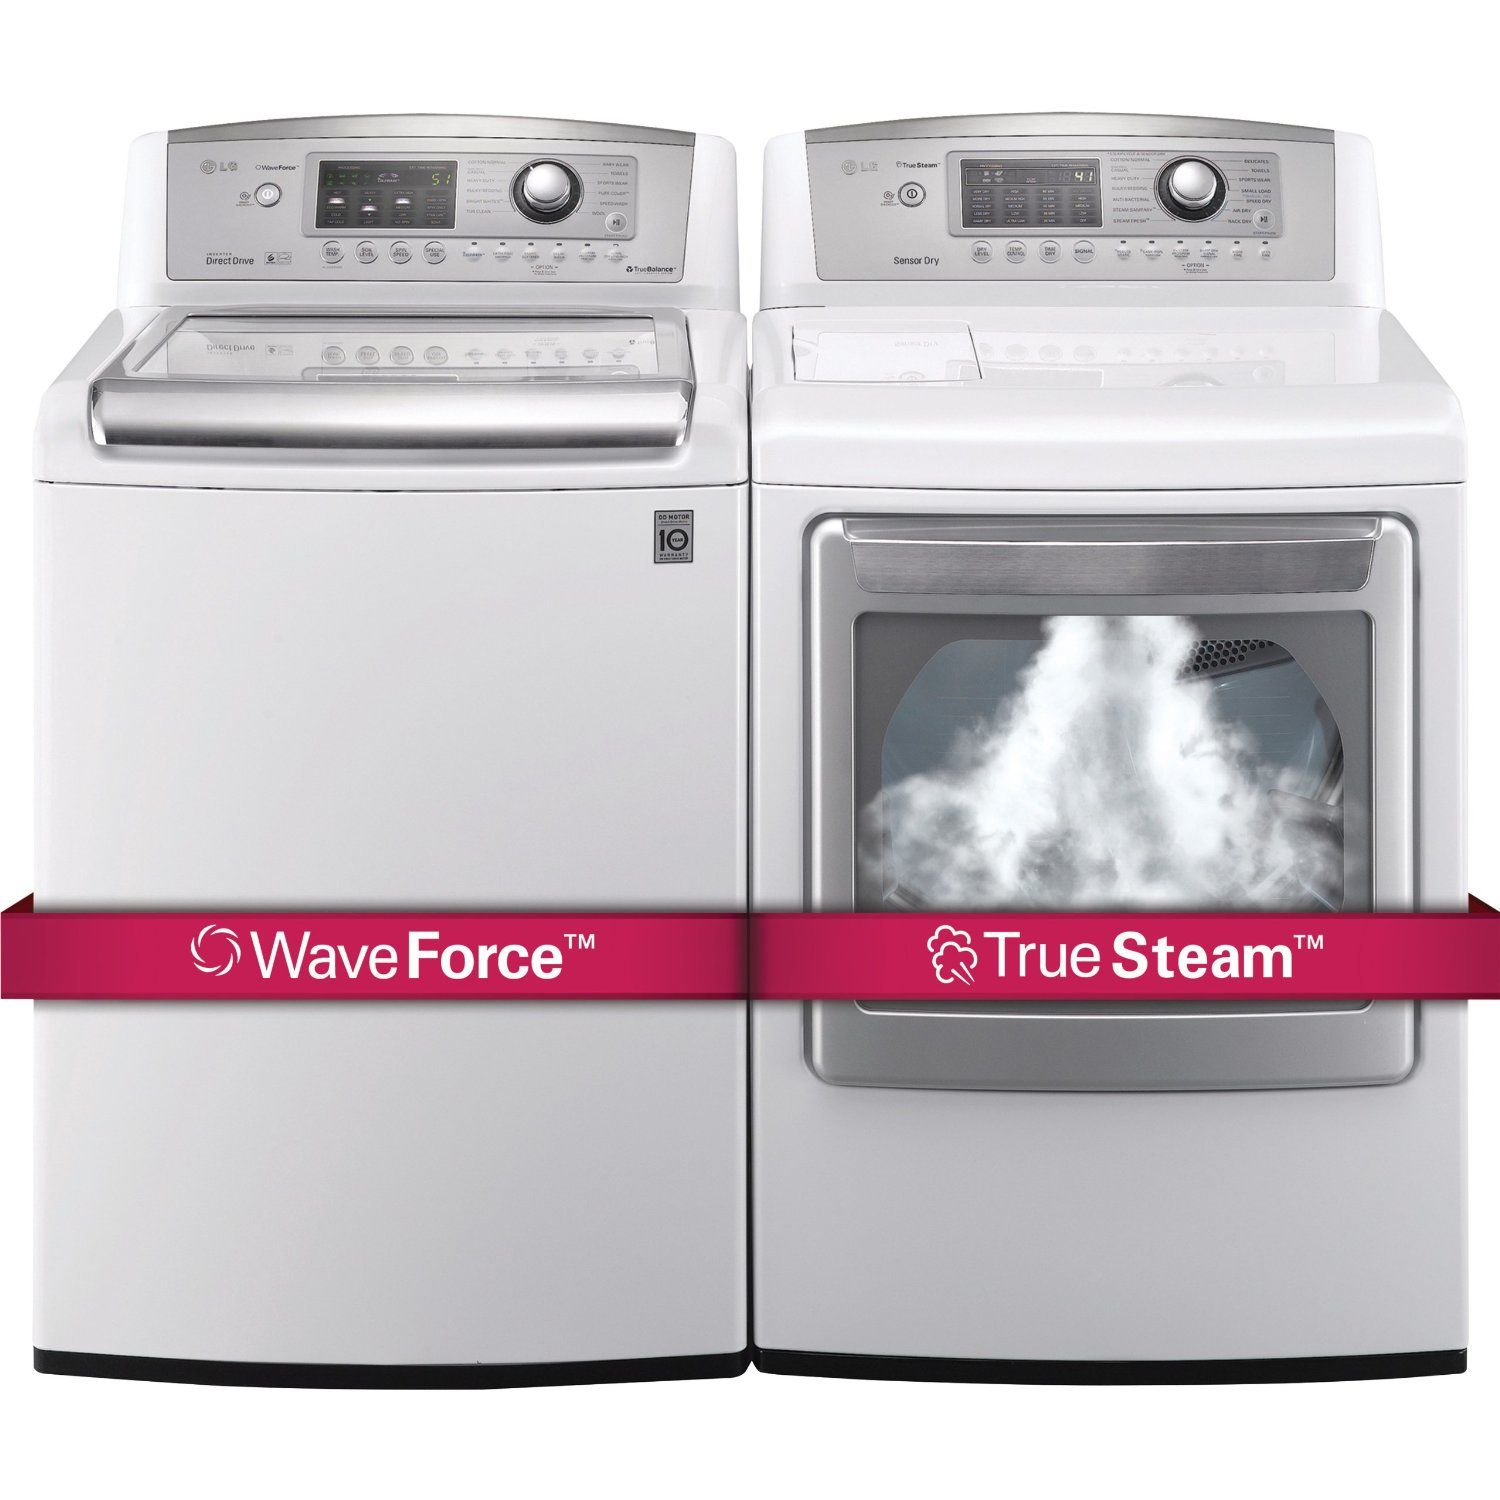 Lg Washing Machines H E Ultra Large Capacity Top Load Laundry Pair With Waveforce Technology Wt5070cw Dlex5170w Electric Dryer